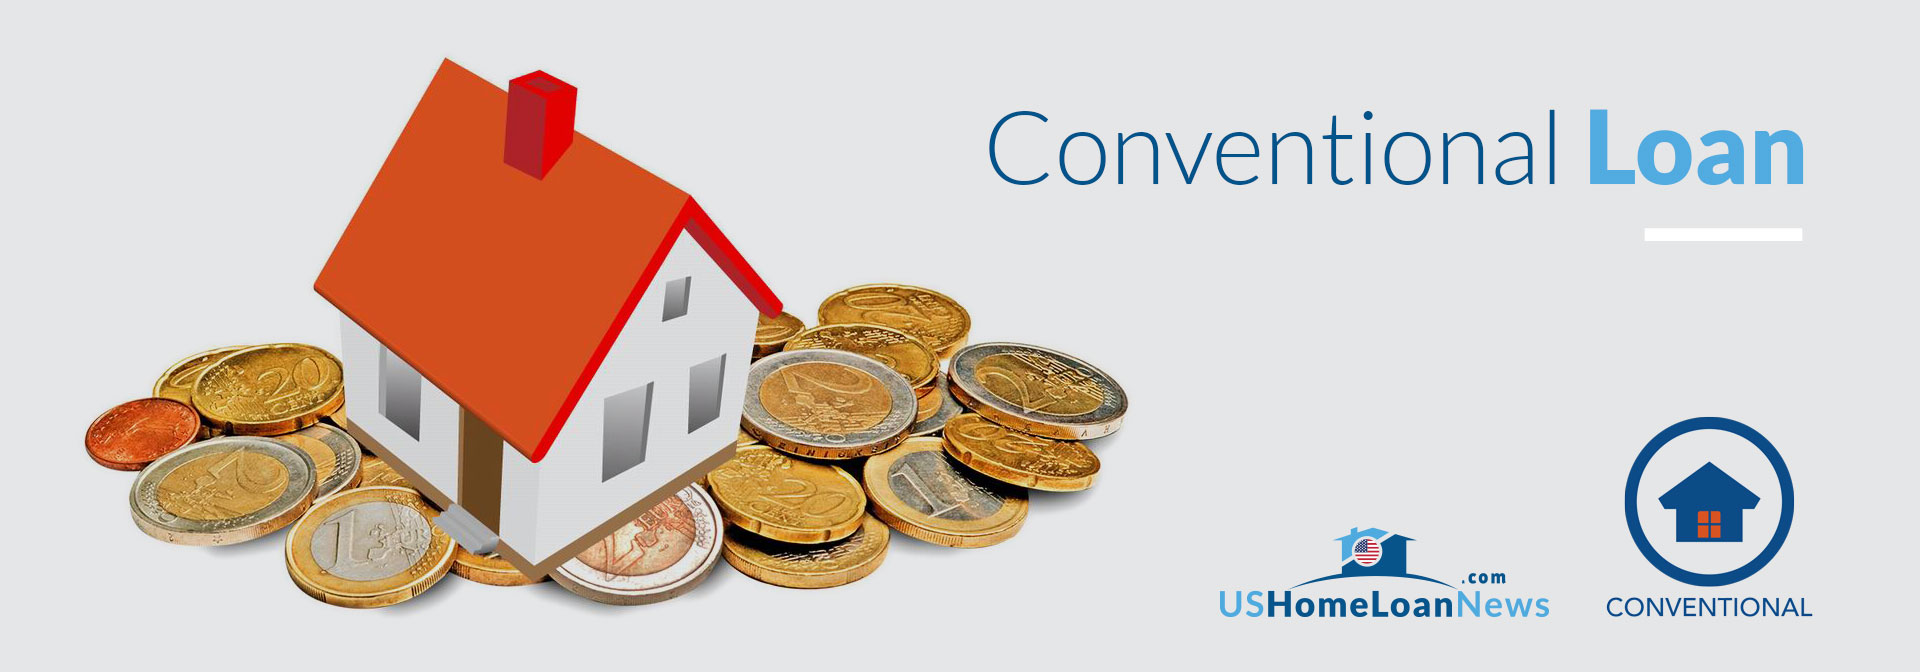 Conventional Loan for Home Loan brought to you by US Home Loan News